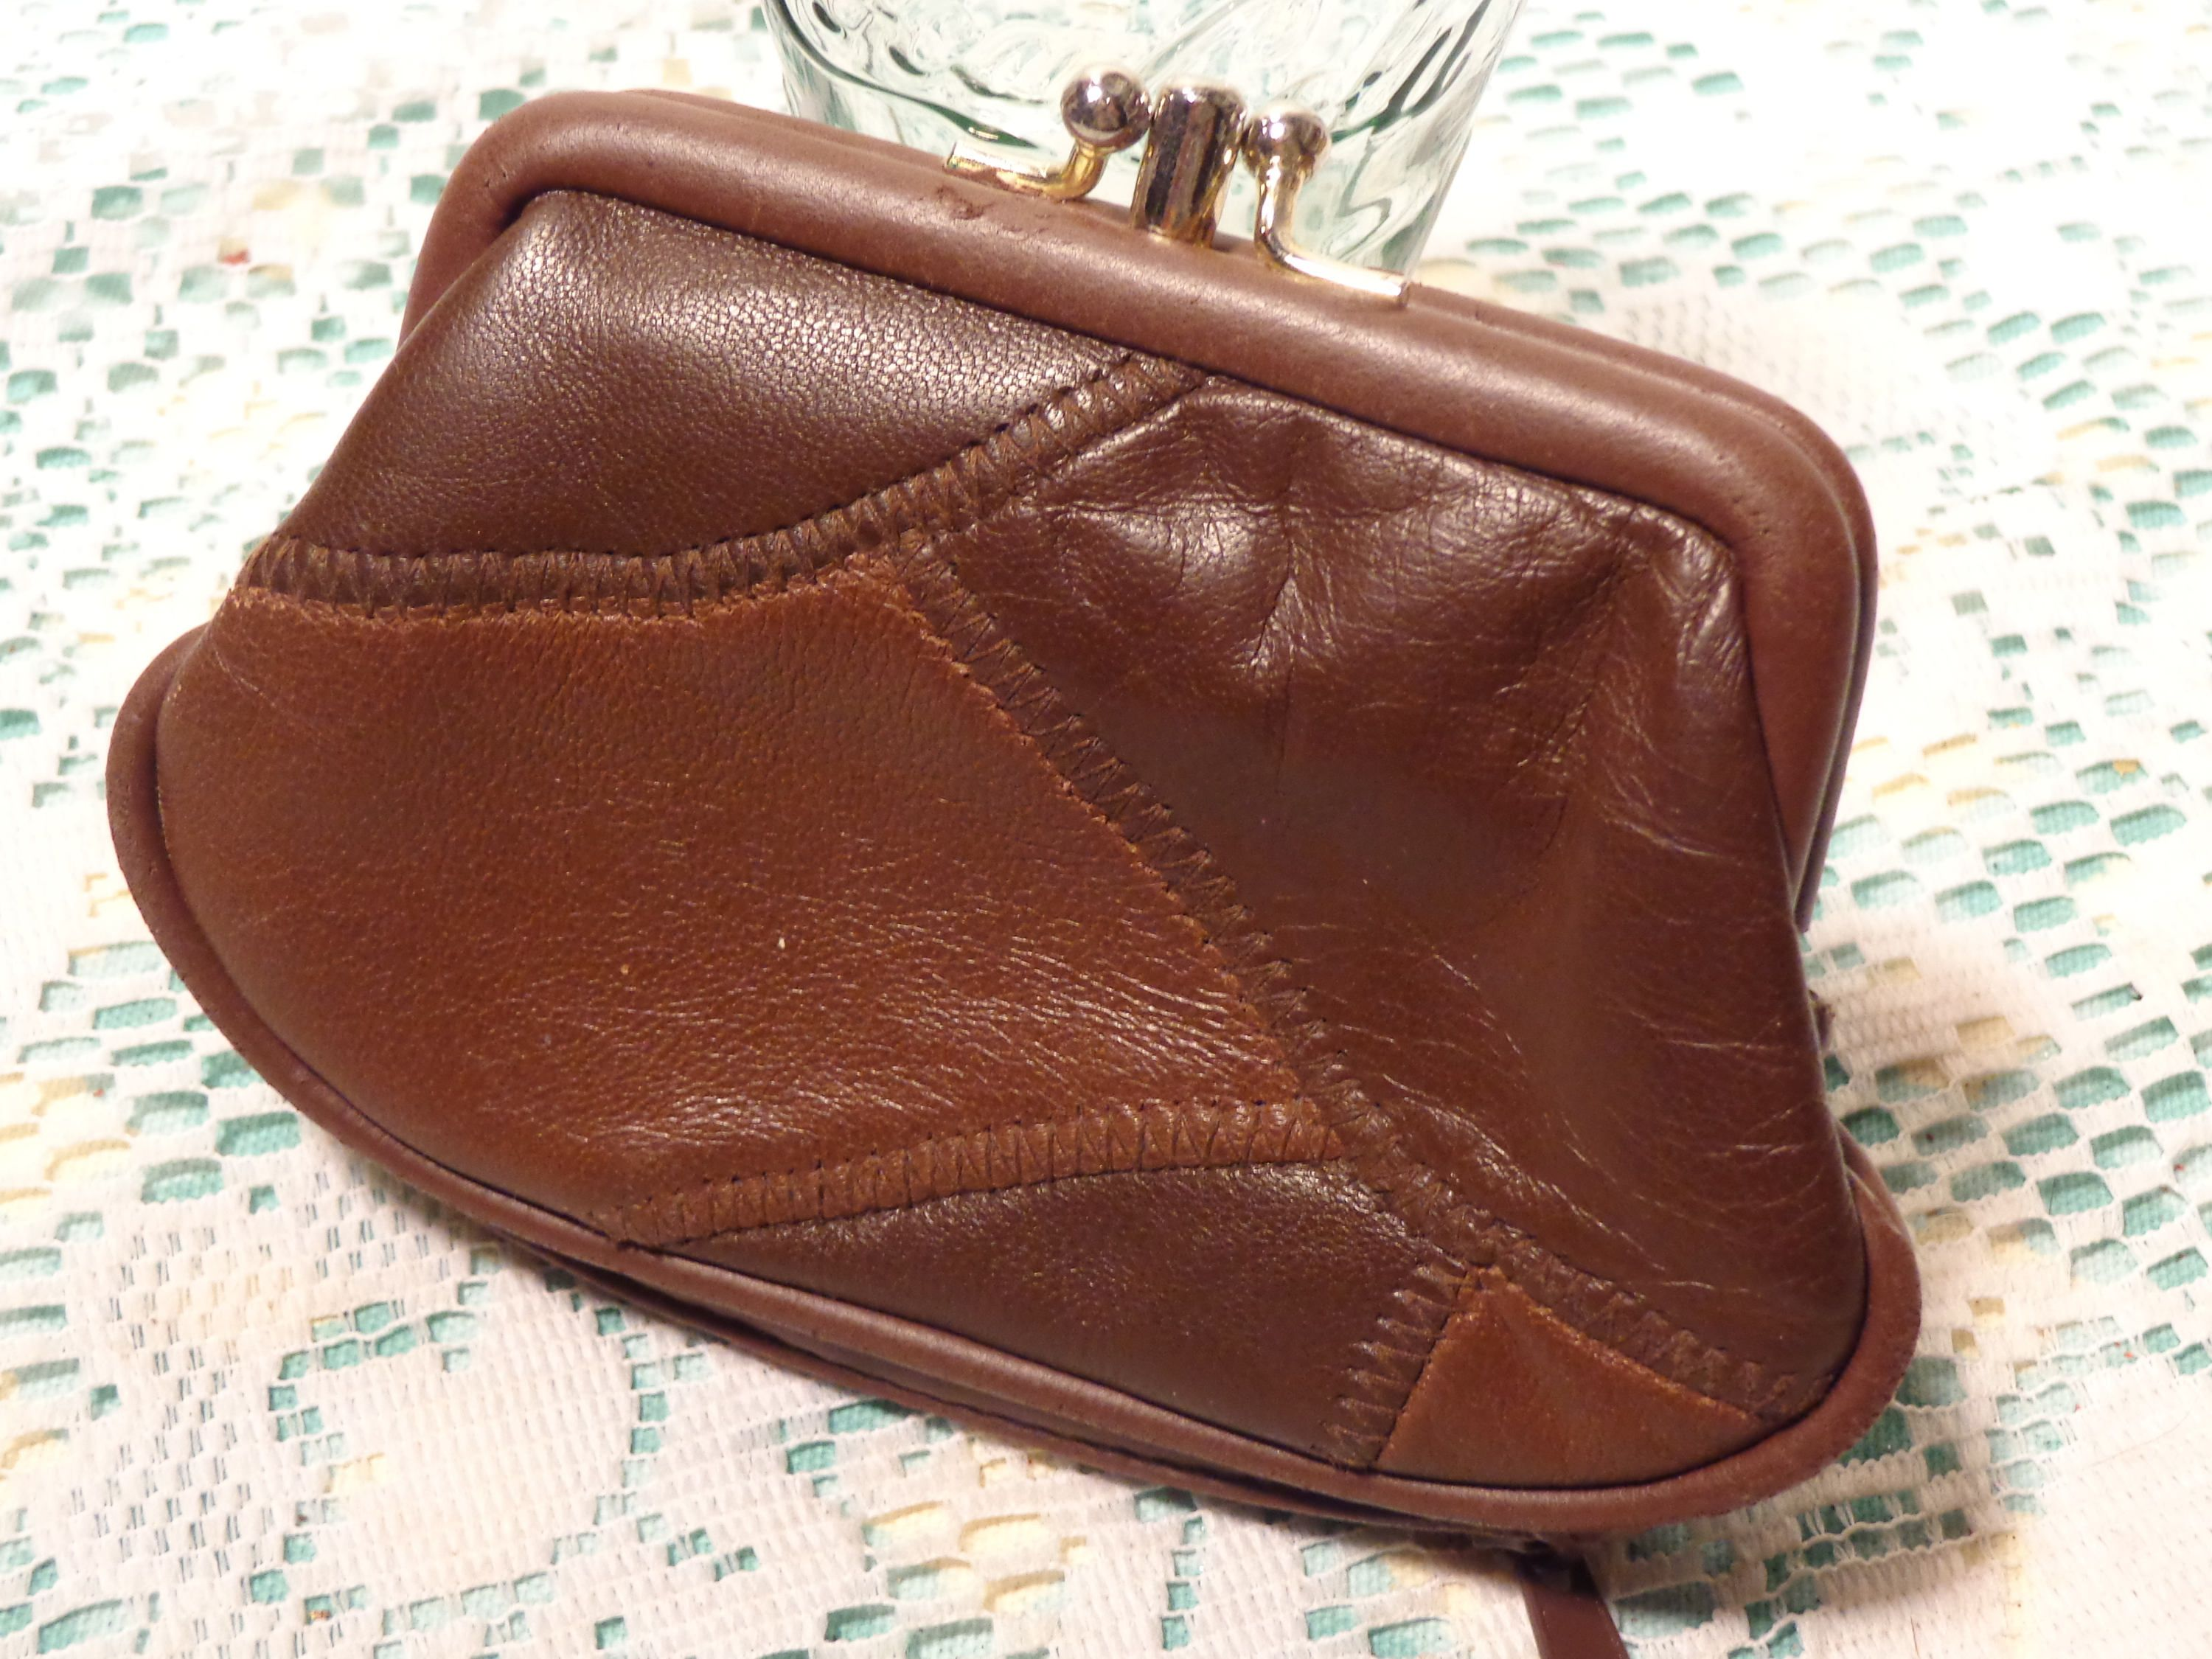 Vintage Brown Patchwork Leather Change Purse - Two Compartment